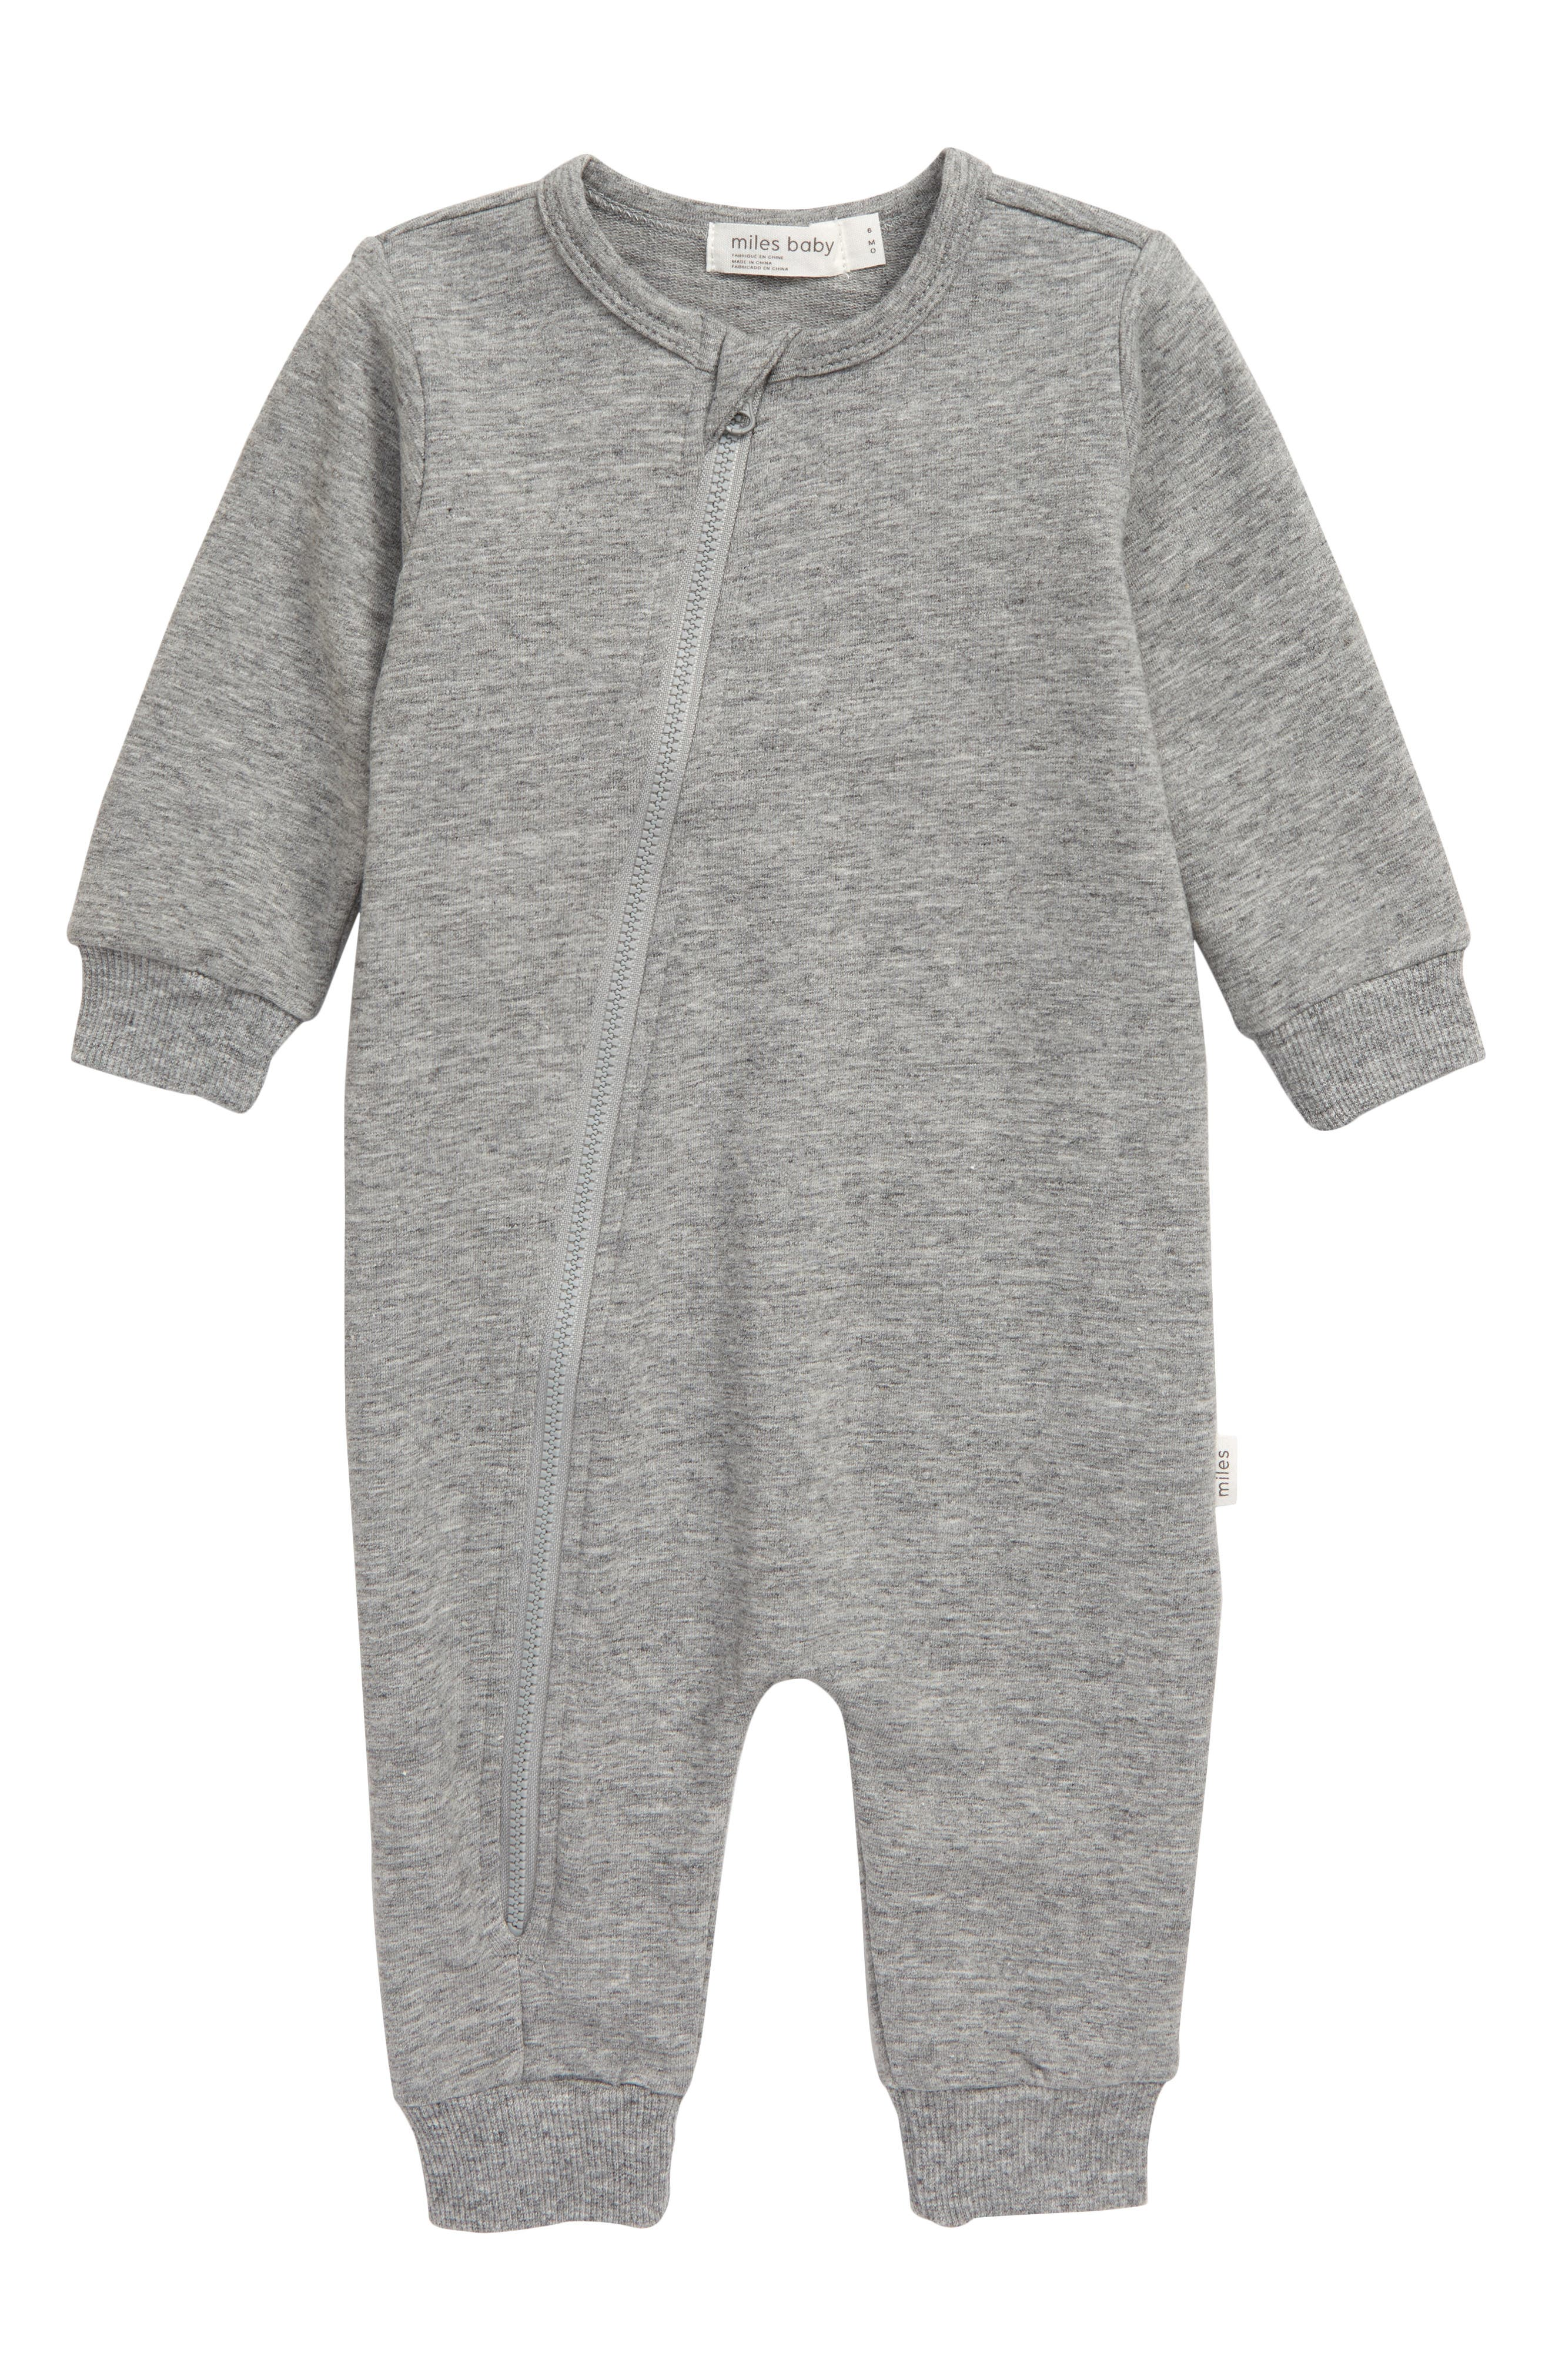 Give your little one a cozy cuddle in this stretchy organic-cotton romper that\\\'s easy on you and baby thanks to a top-to-bottom zipper fixed with a chin guard. Style Name: Miles Baby Asymmetrical Zip Romper (Baby). Style Number: 5886352 1. Available in stores.